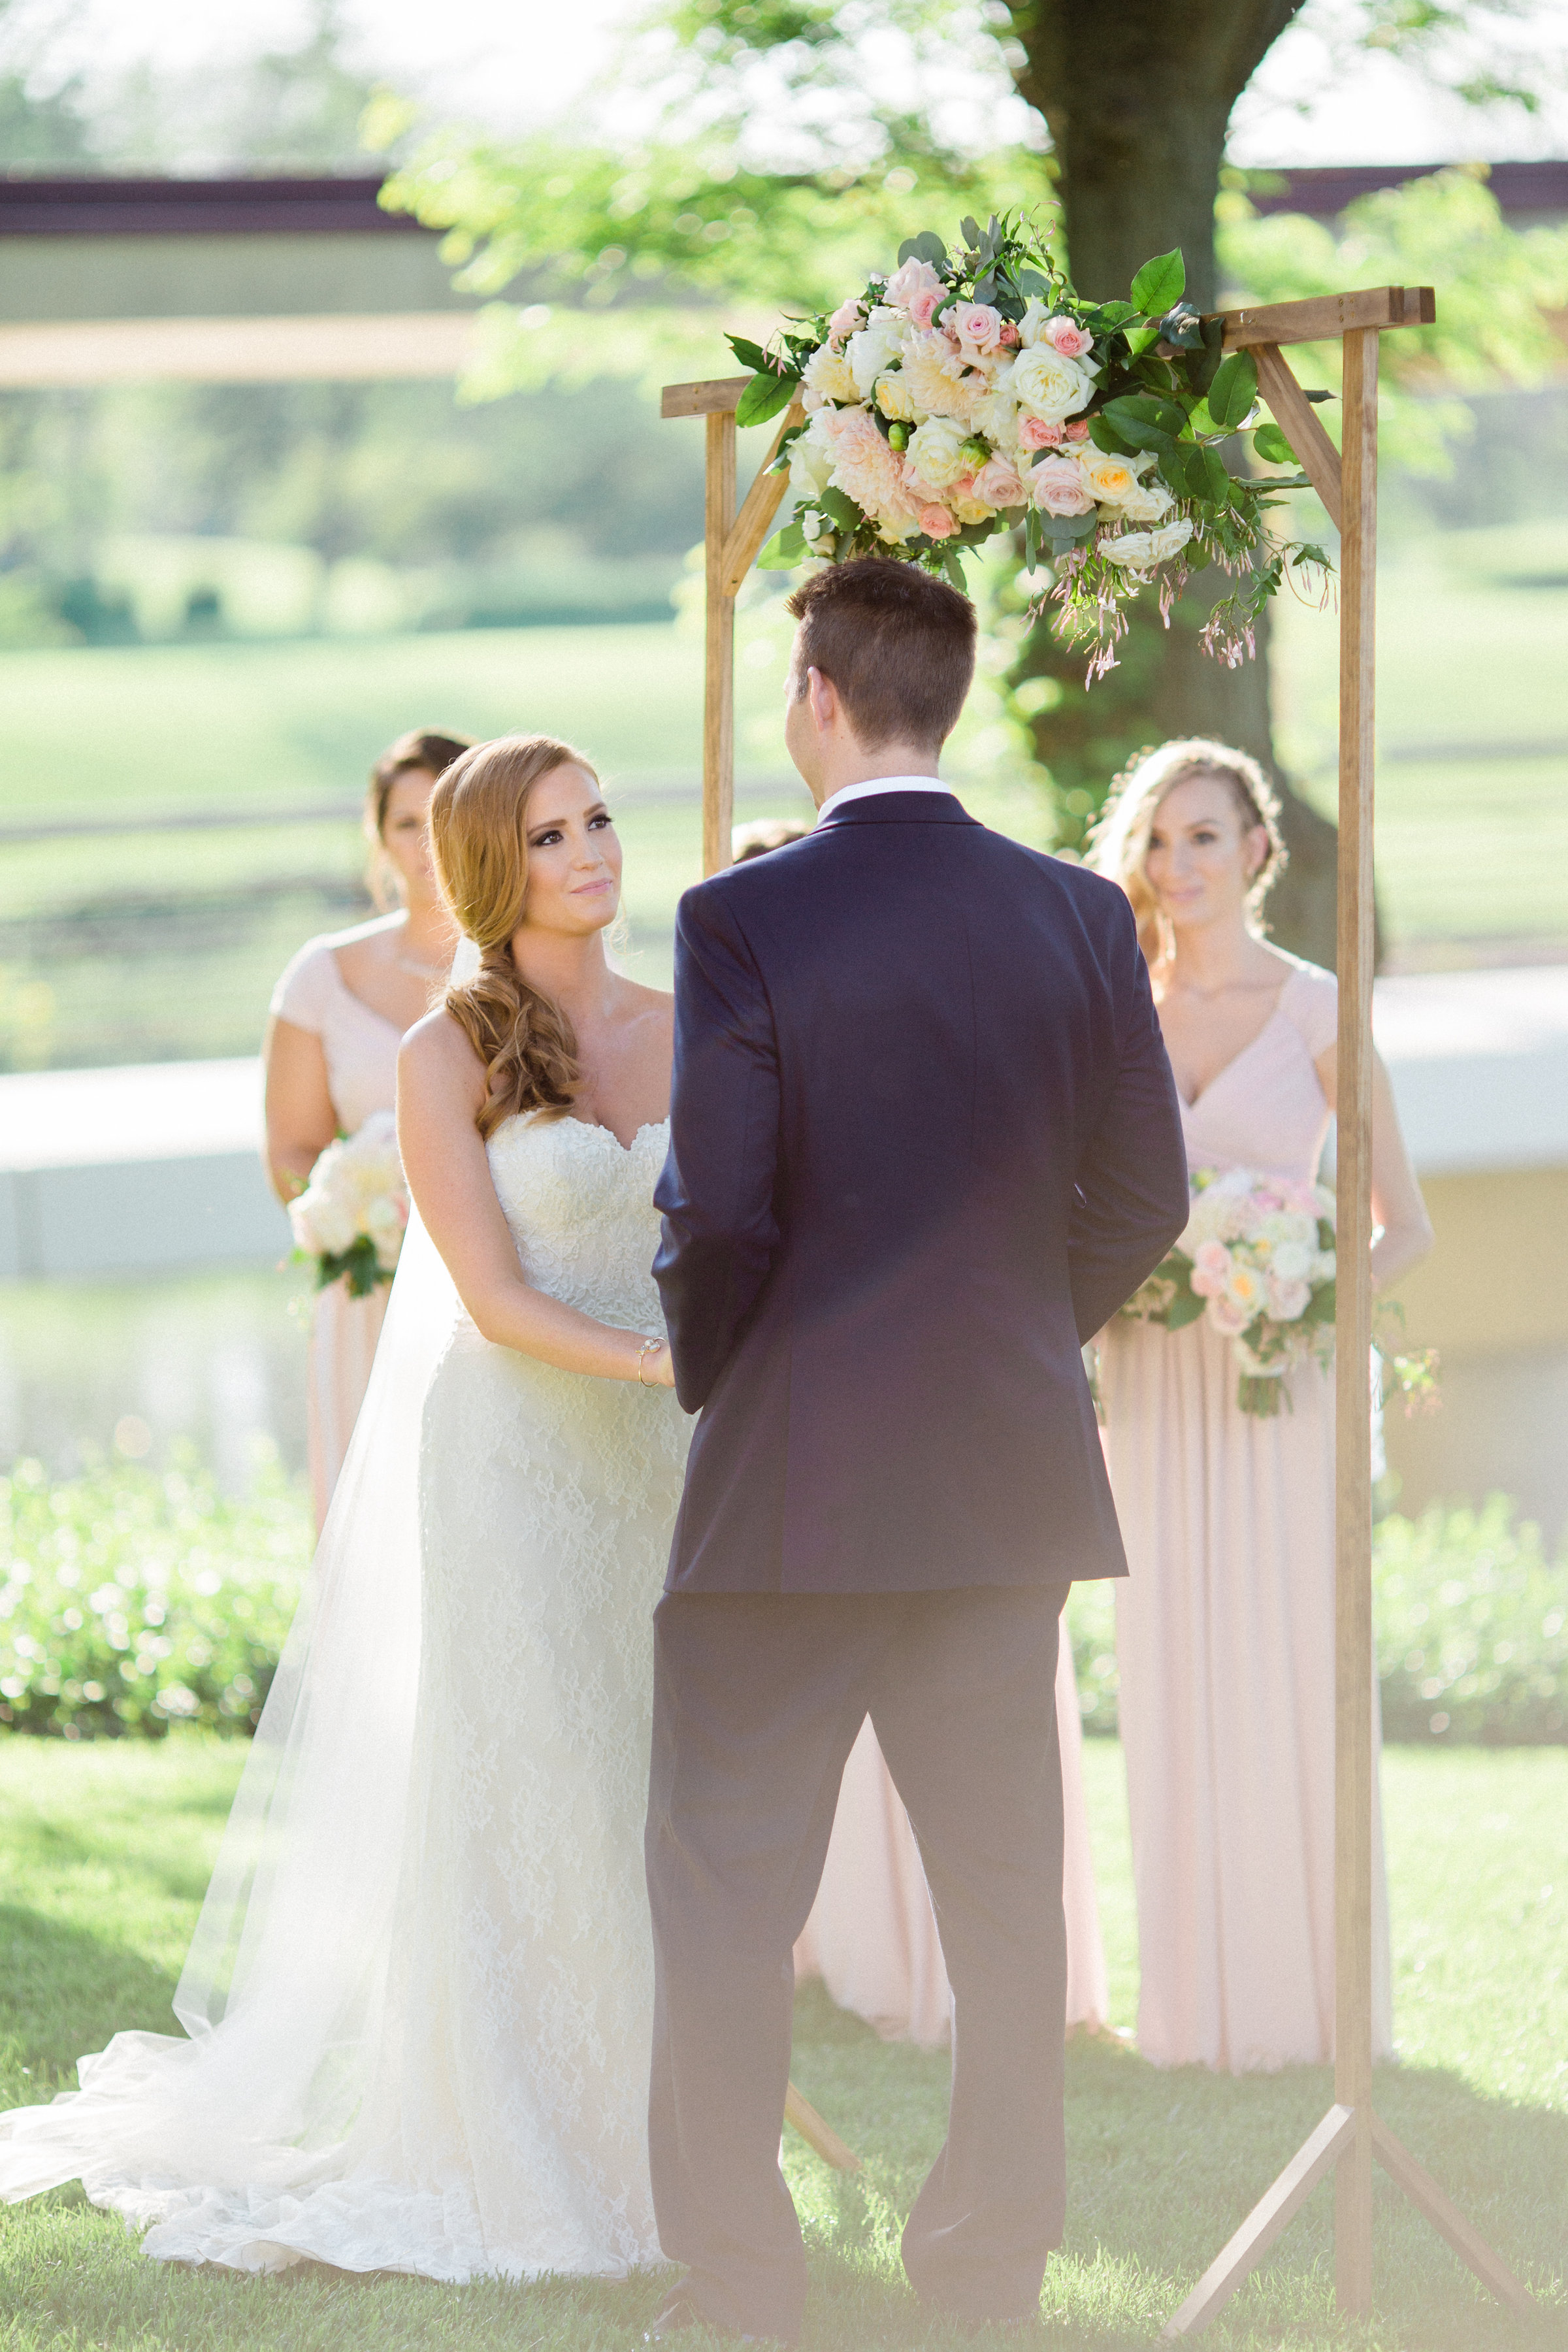 fine art wedding photography by Booth Photographics at Hyatt Lodge at McDonald's Campus